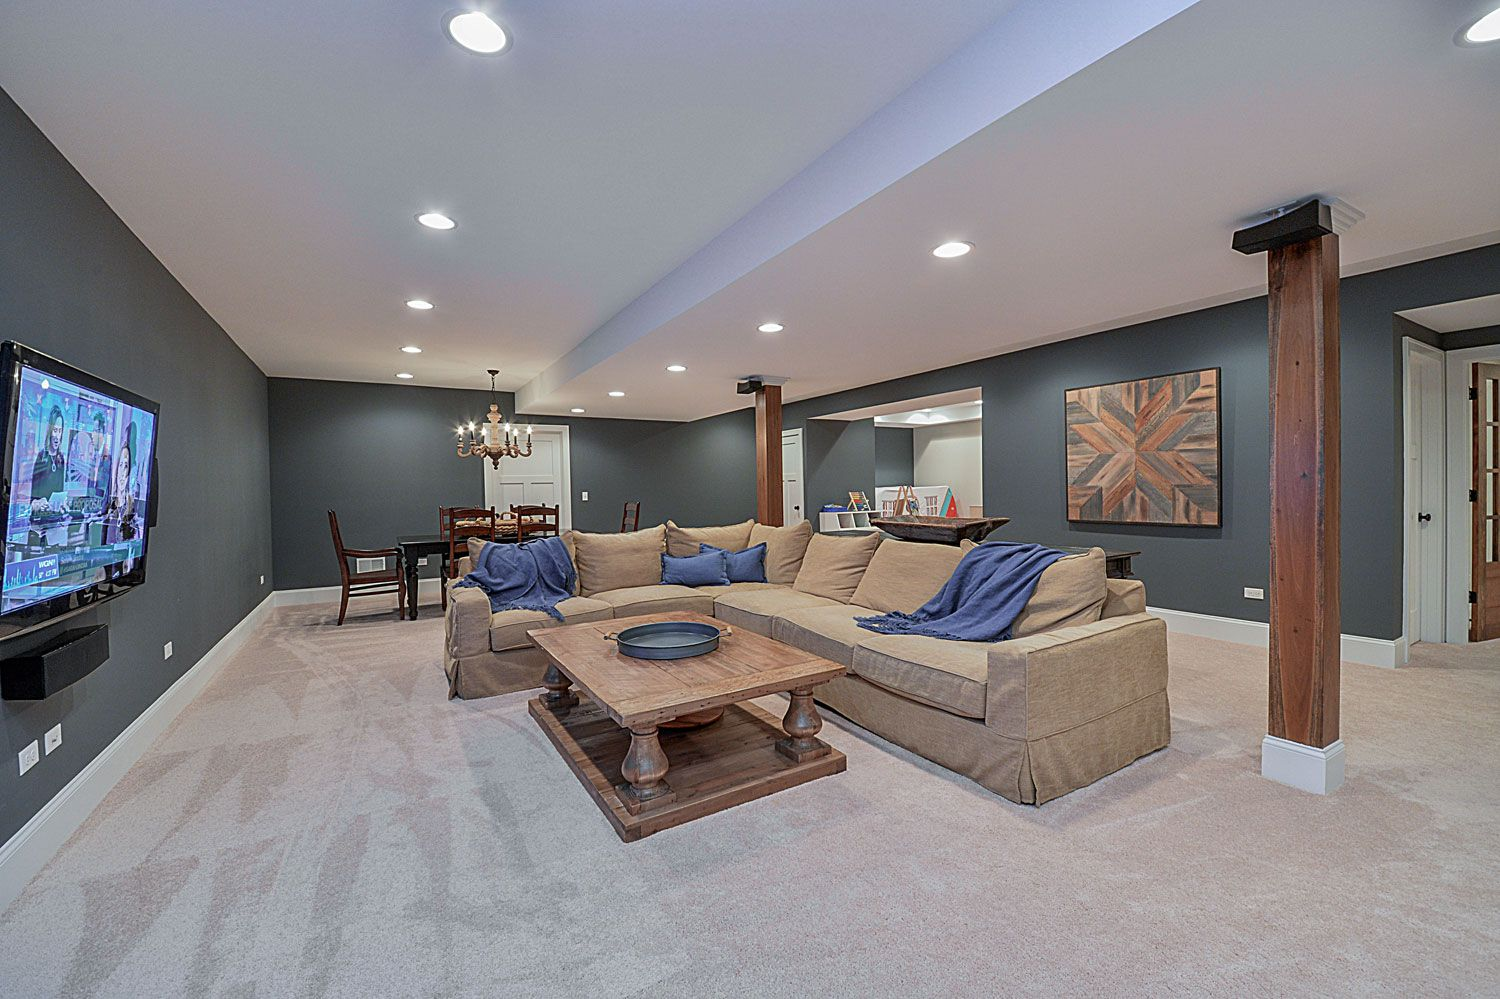 Remodeling Basement Ideas Drew And Nicole 39s Basement Remodel Pictures For The Home